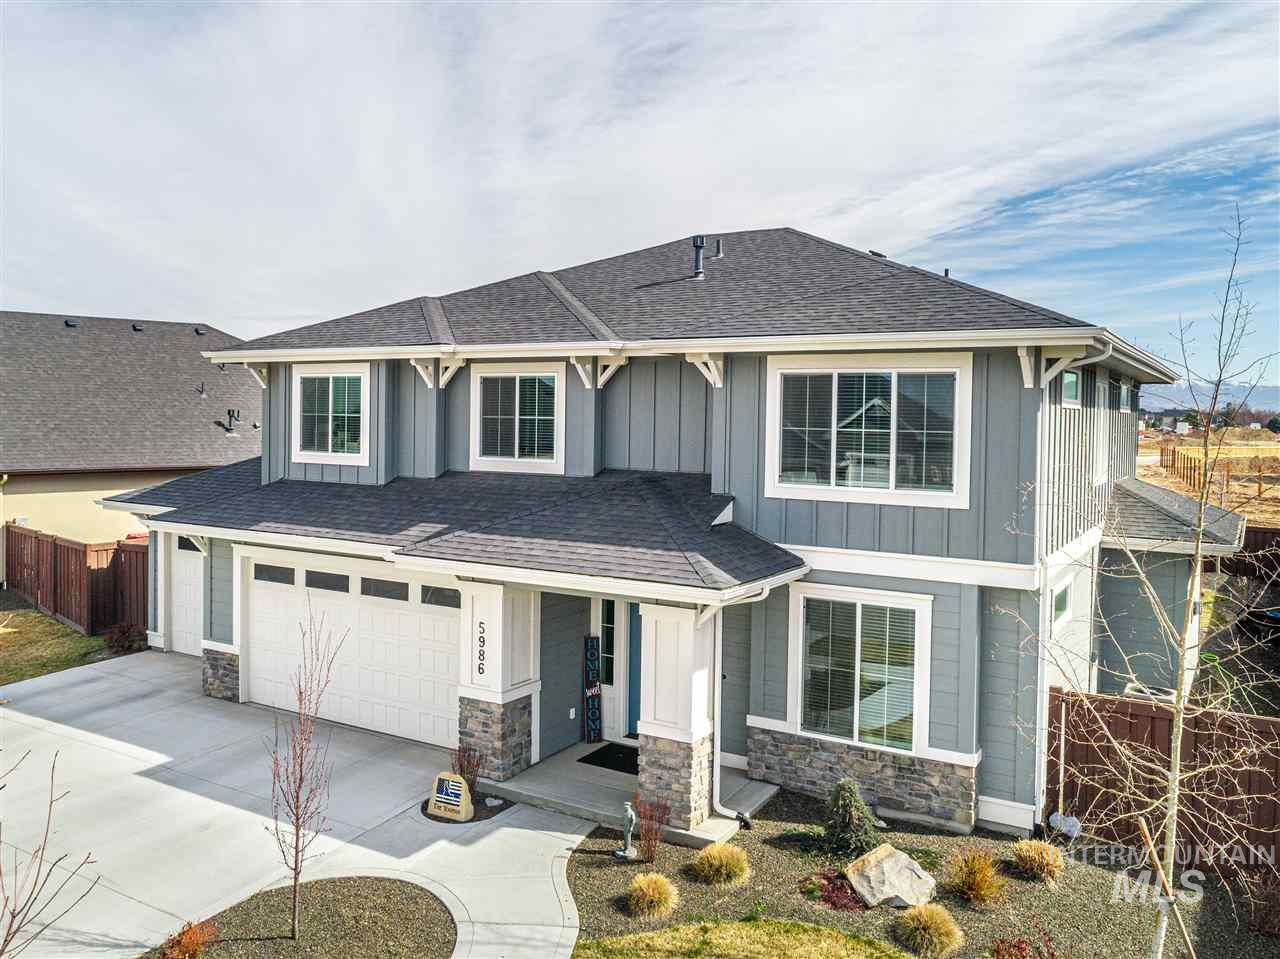 Gorgeous custom West facing home in Bainbridge! Light & bright kitchen is a gourmet delight w/ SS appliances, walk in pantry, quartz counter tops, island and custom cabinets. Custom built-ins and mill work throughout. Open concept & stylish modern fireplace. Master bath offers a spa like retreat with soaker tub & walk in tiled shower. Extensive use of hardwood and custom tile flooring. Nice covered back patio makes for excellent for outdoor entertaining. Lots more! Community Pool and tons of common area !!!